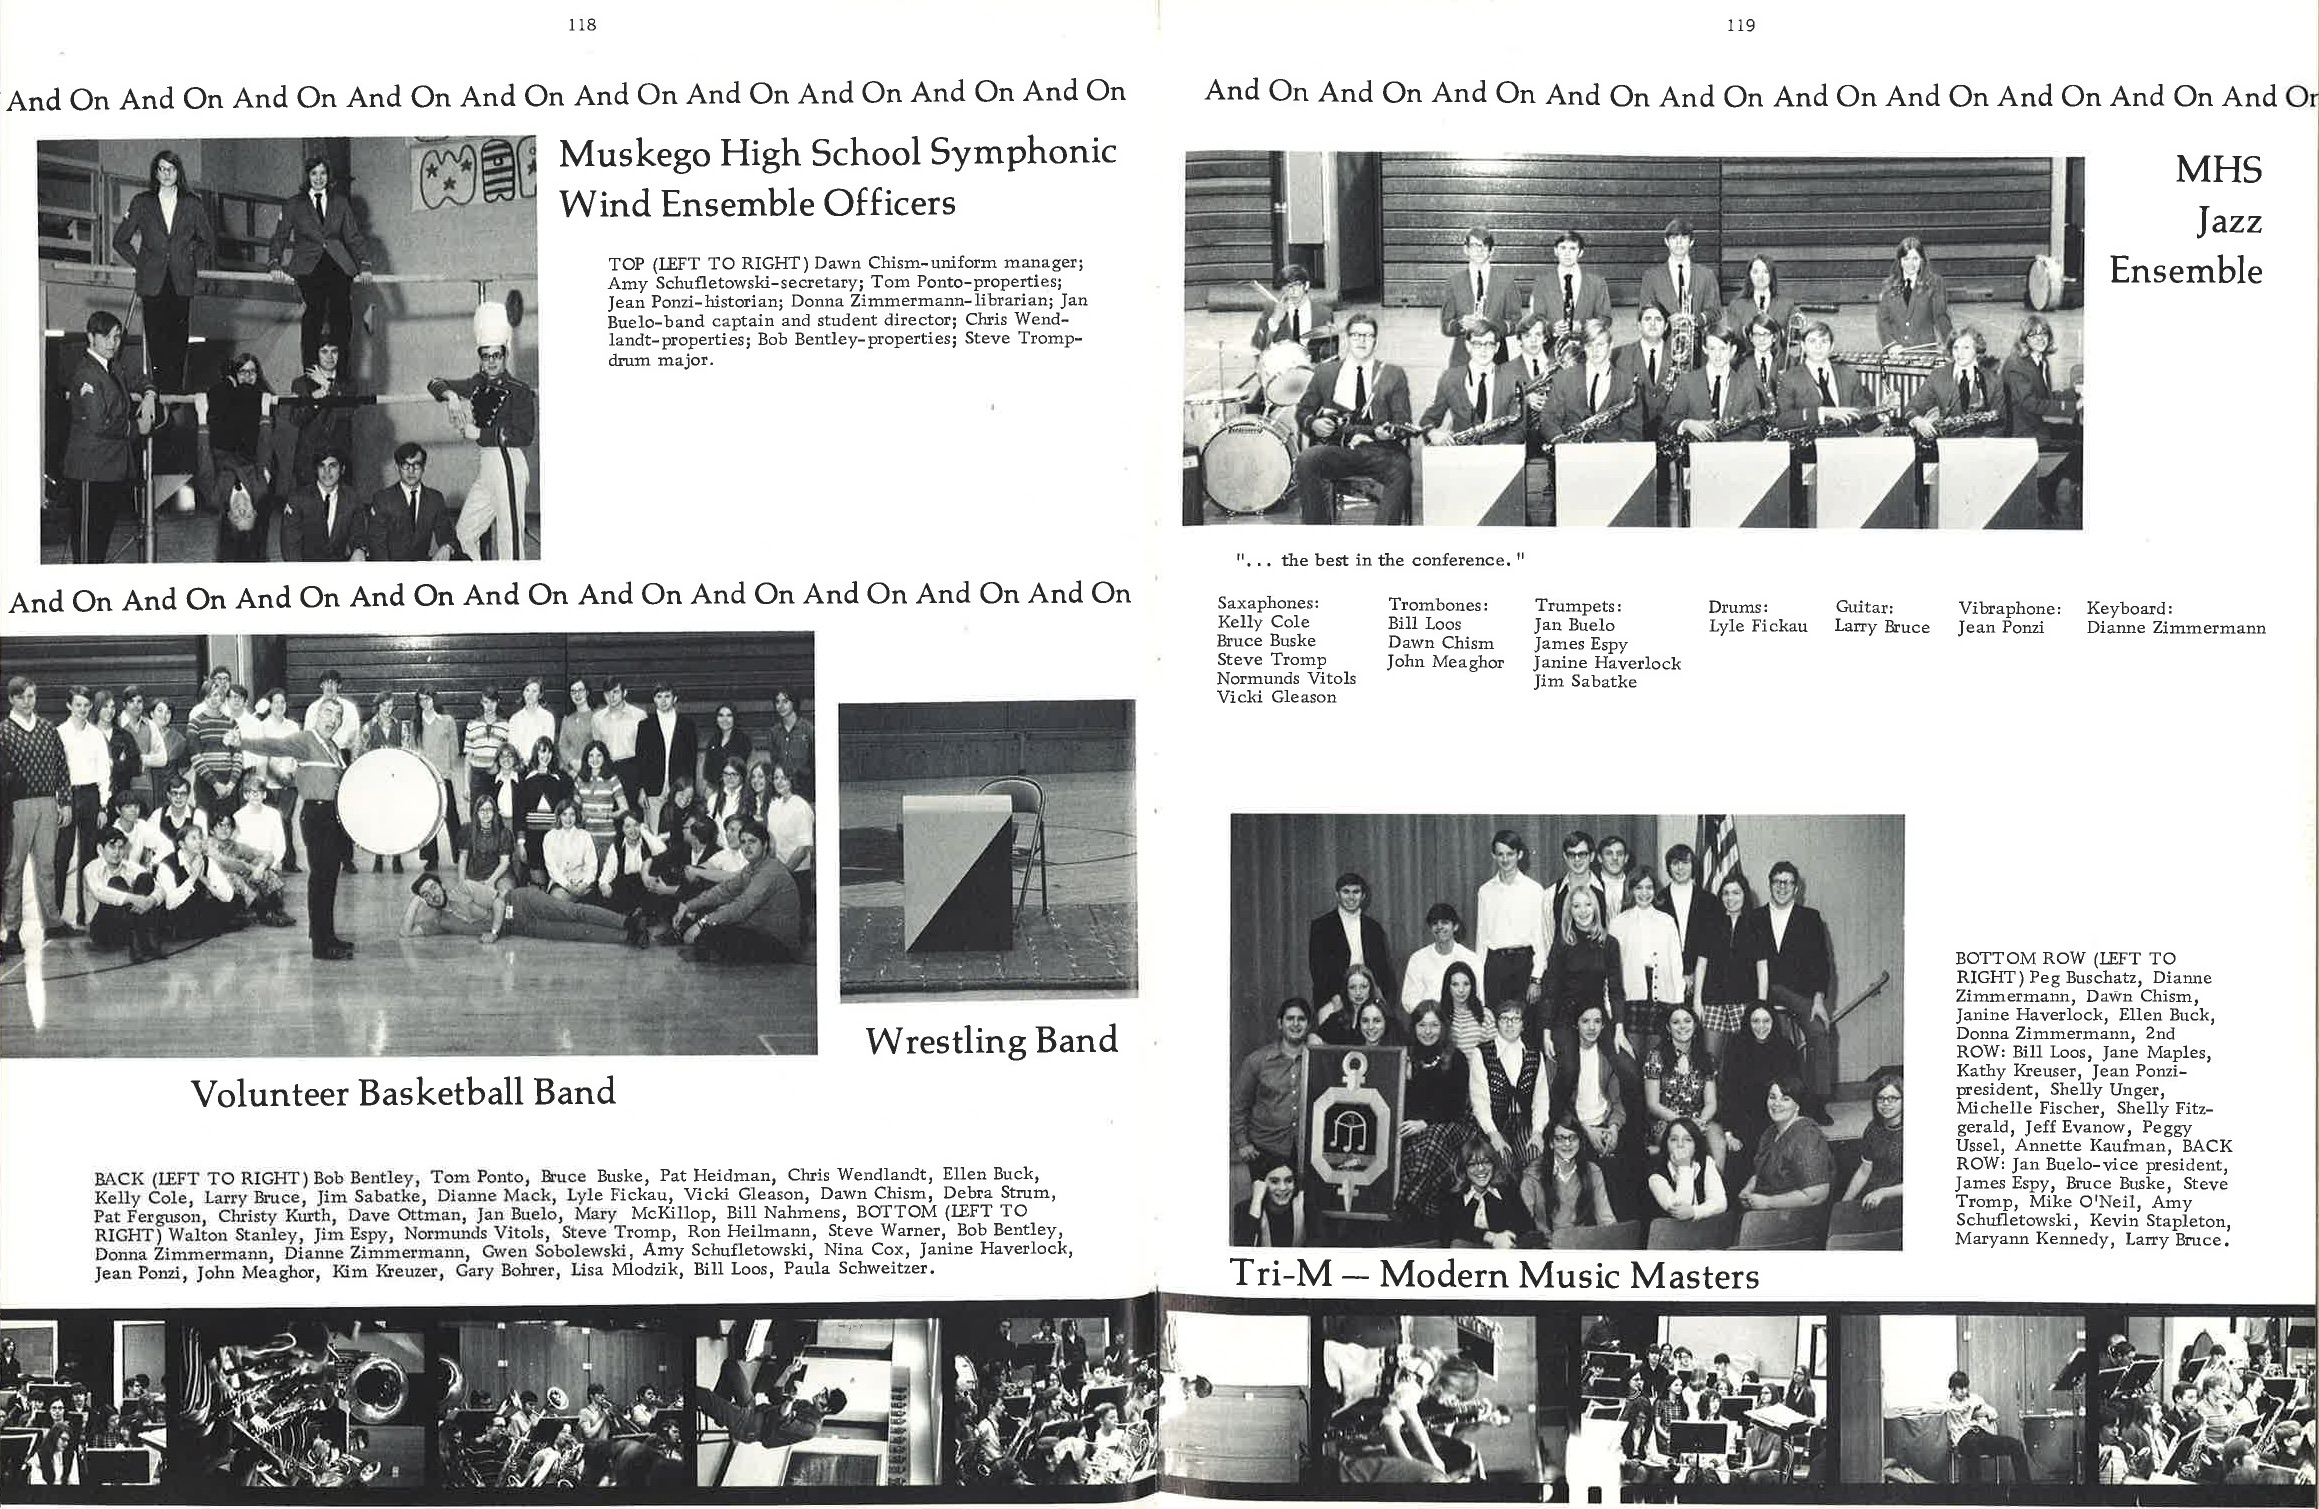 1972_Yearbook_118-119.jpg